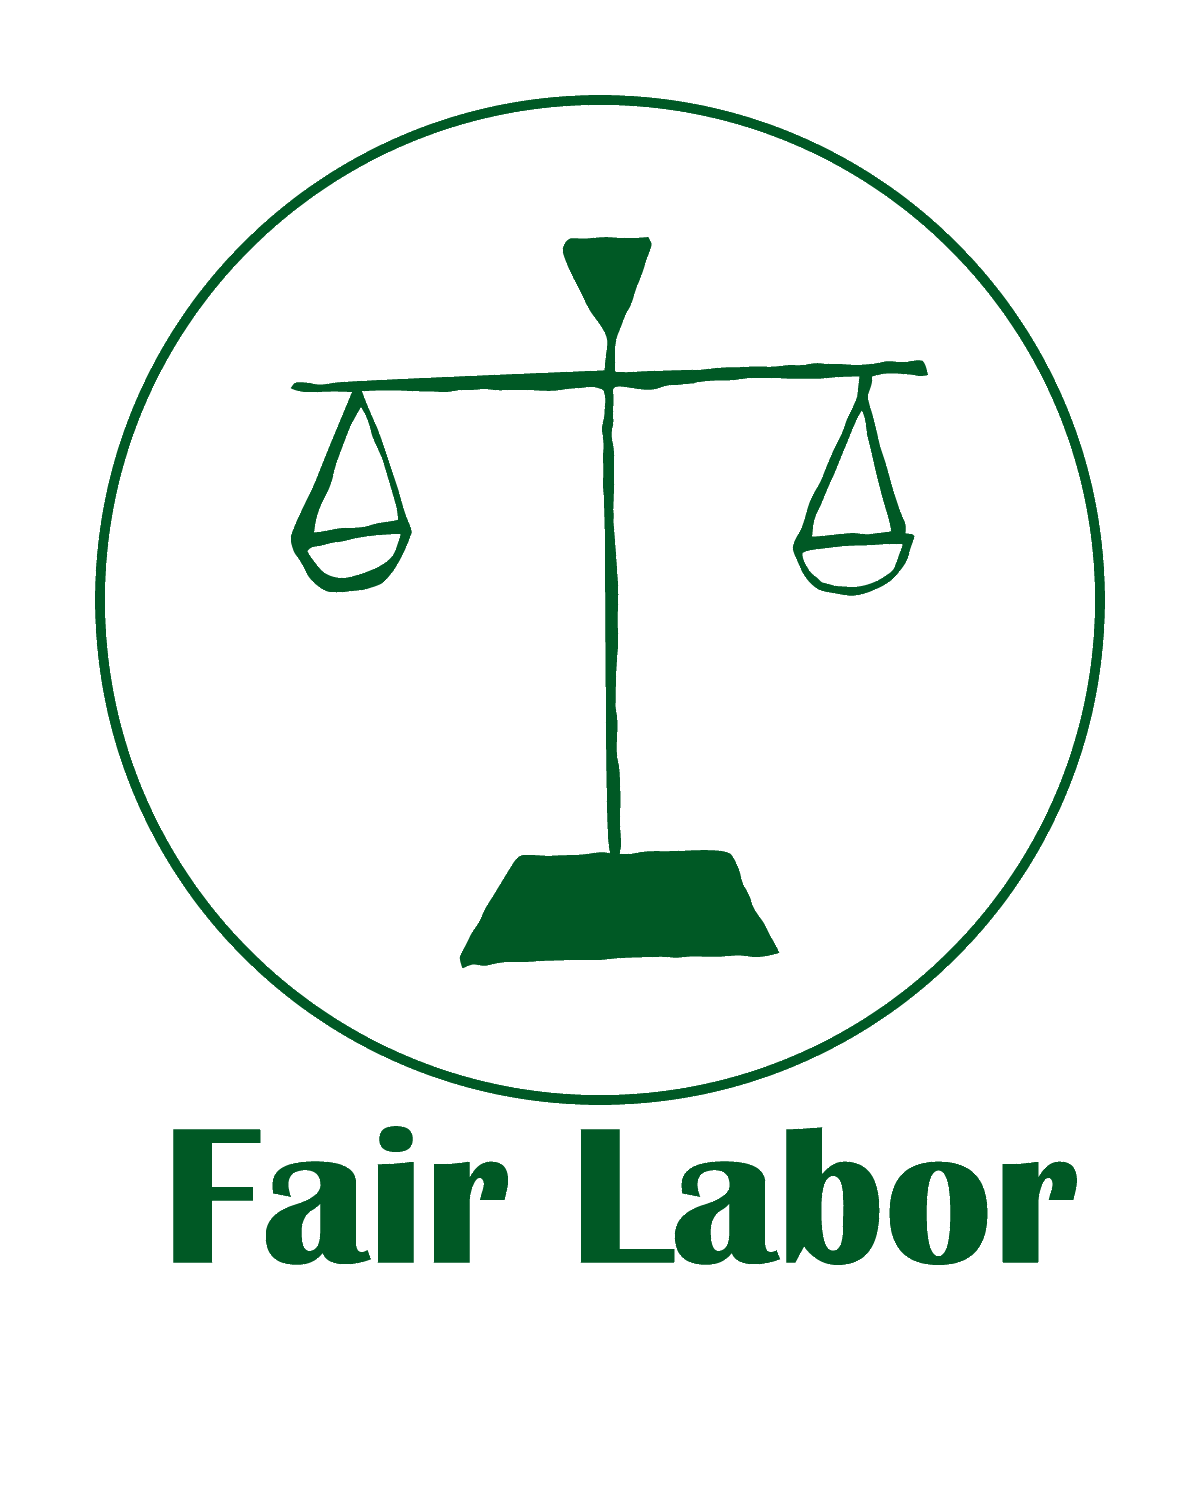 The Green Bundle Fair Labor Logo